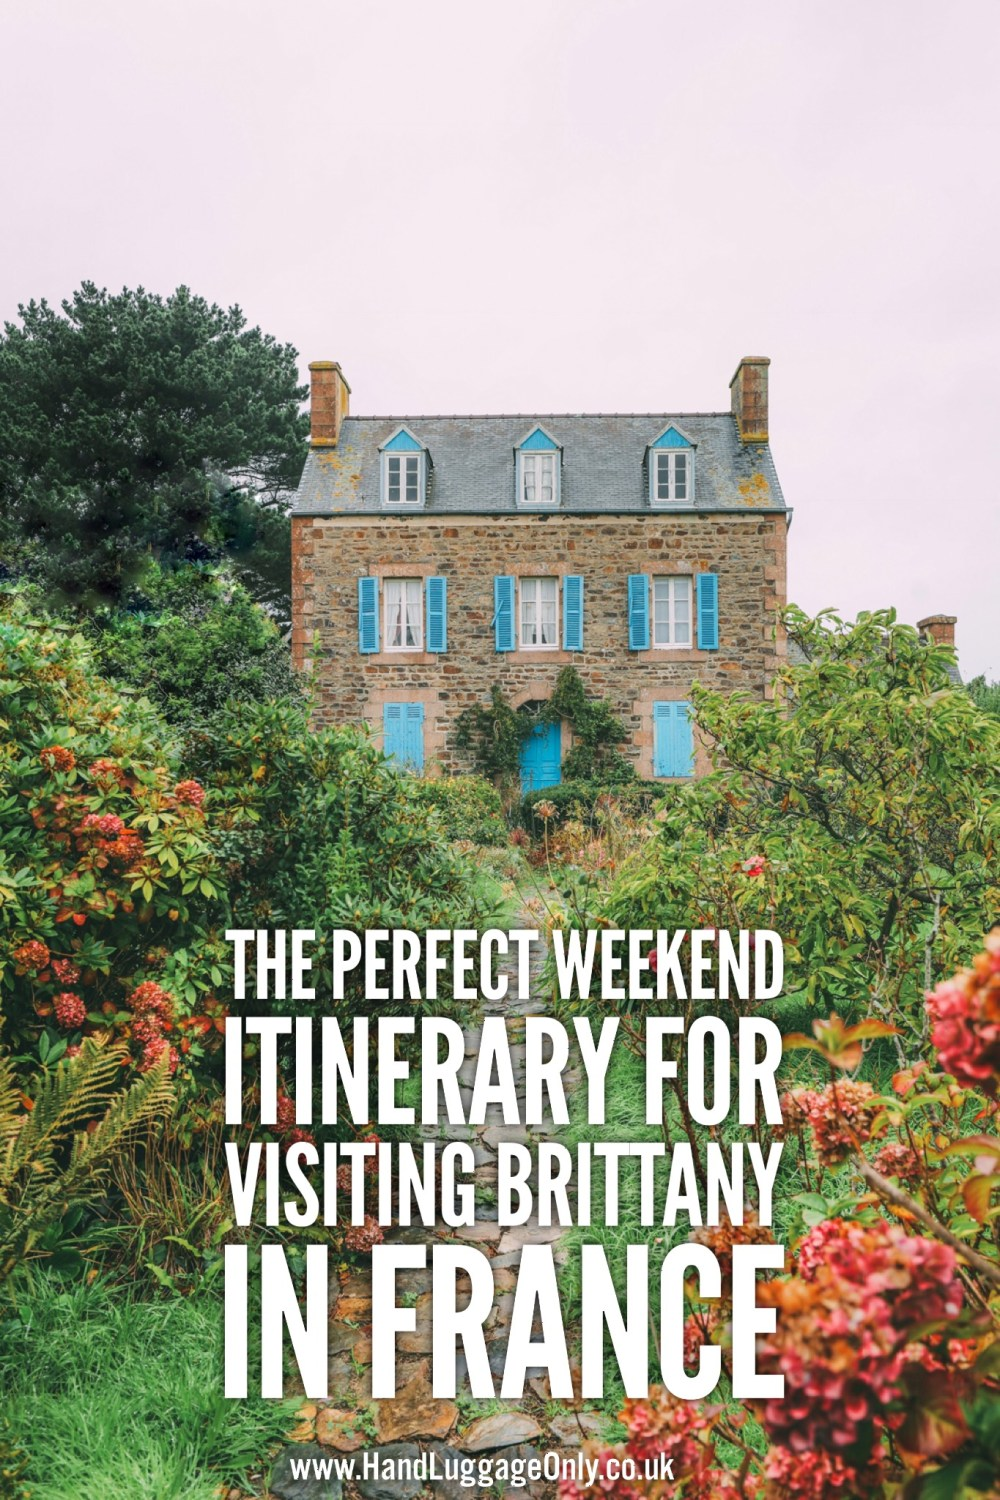 The Perfect Weekend Itinerary For Visiting Brittany - France's Beautiful Celtic Region